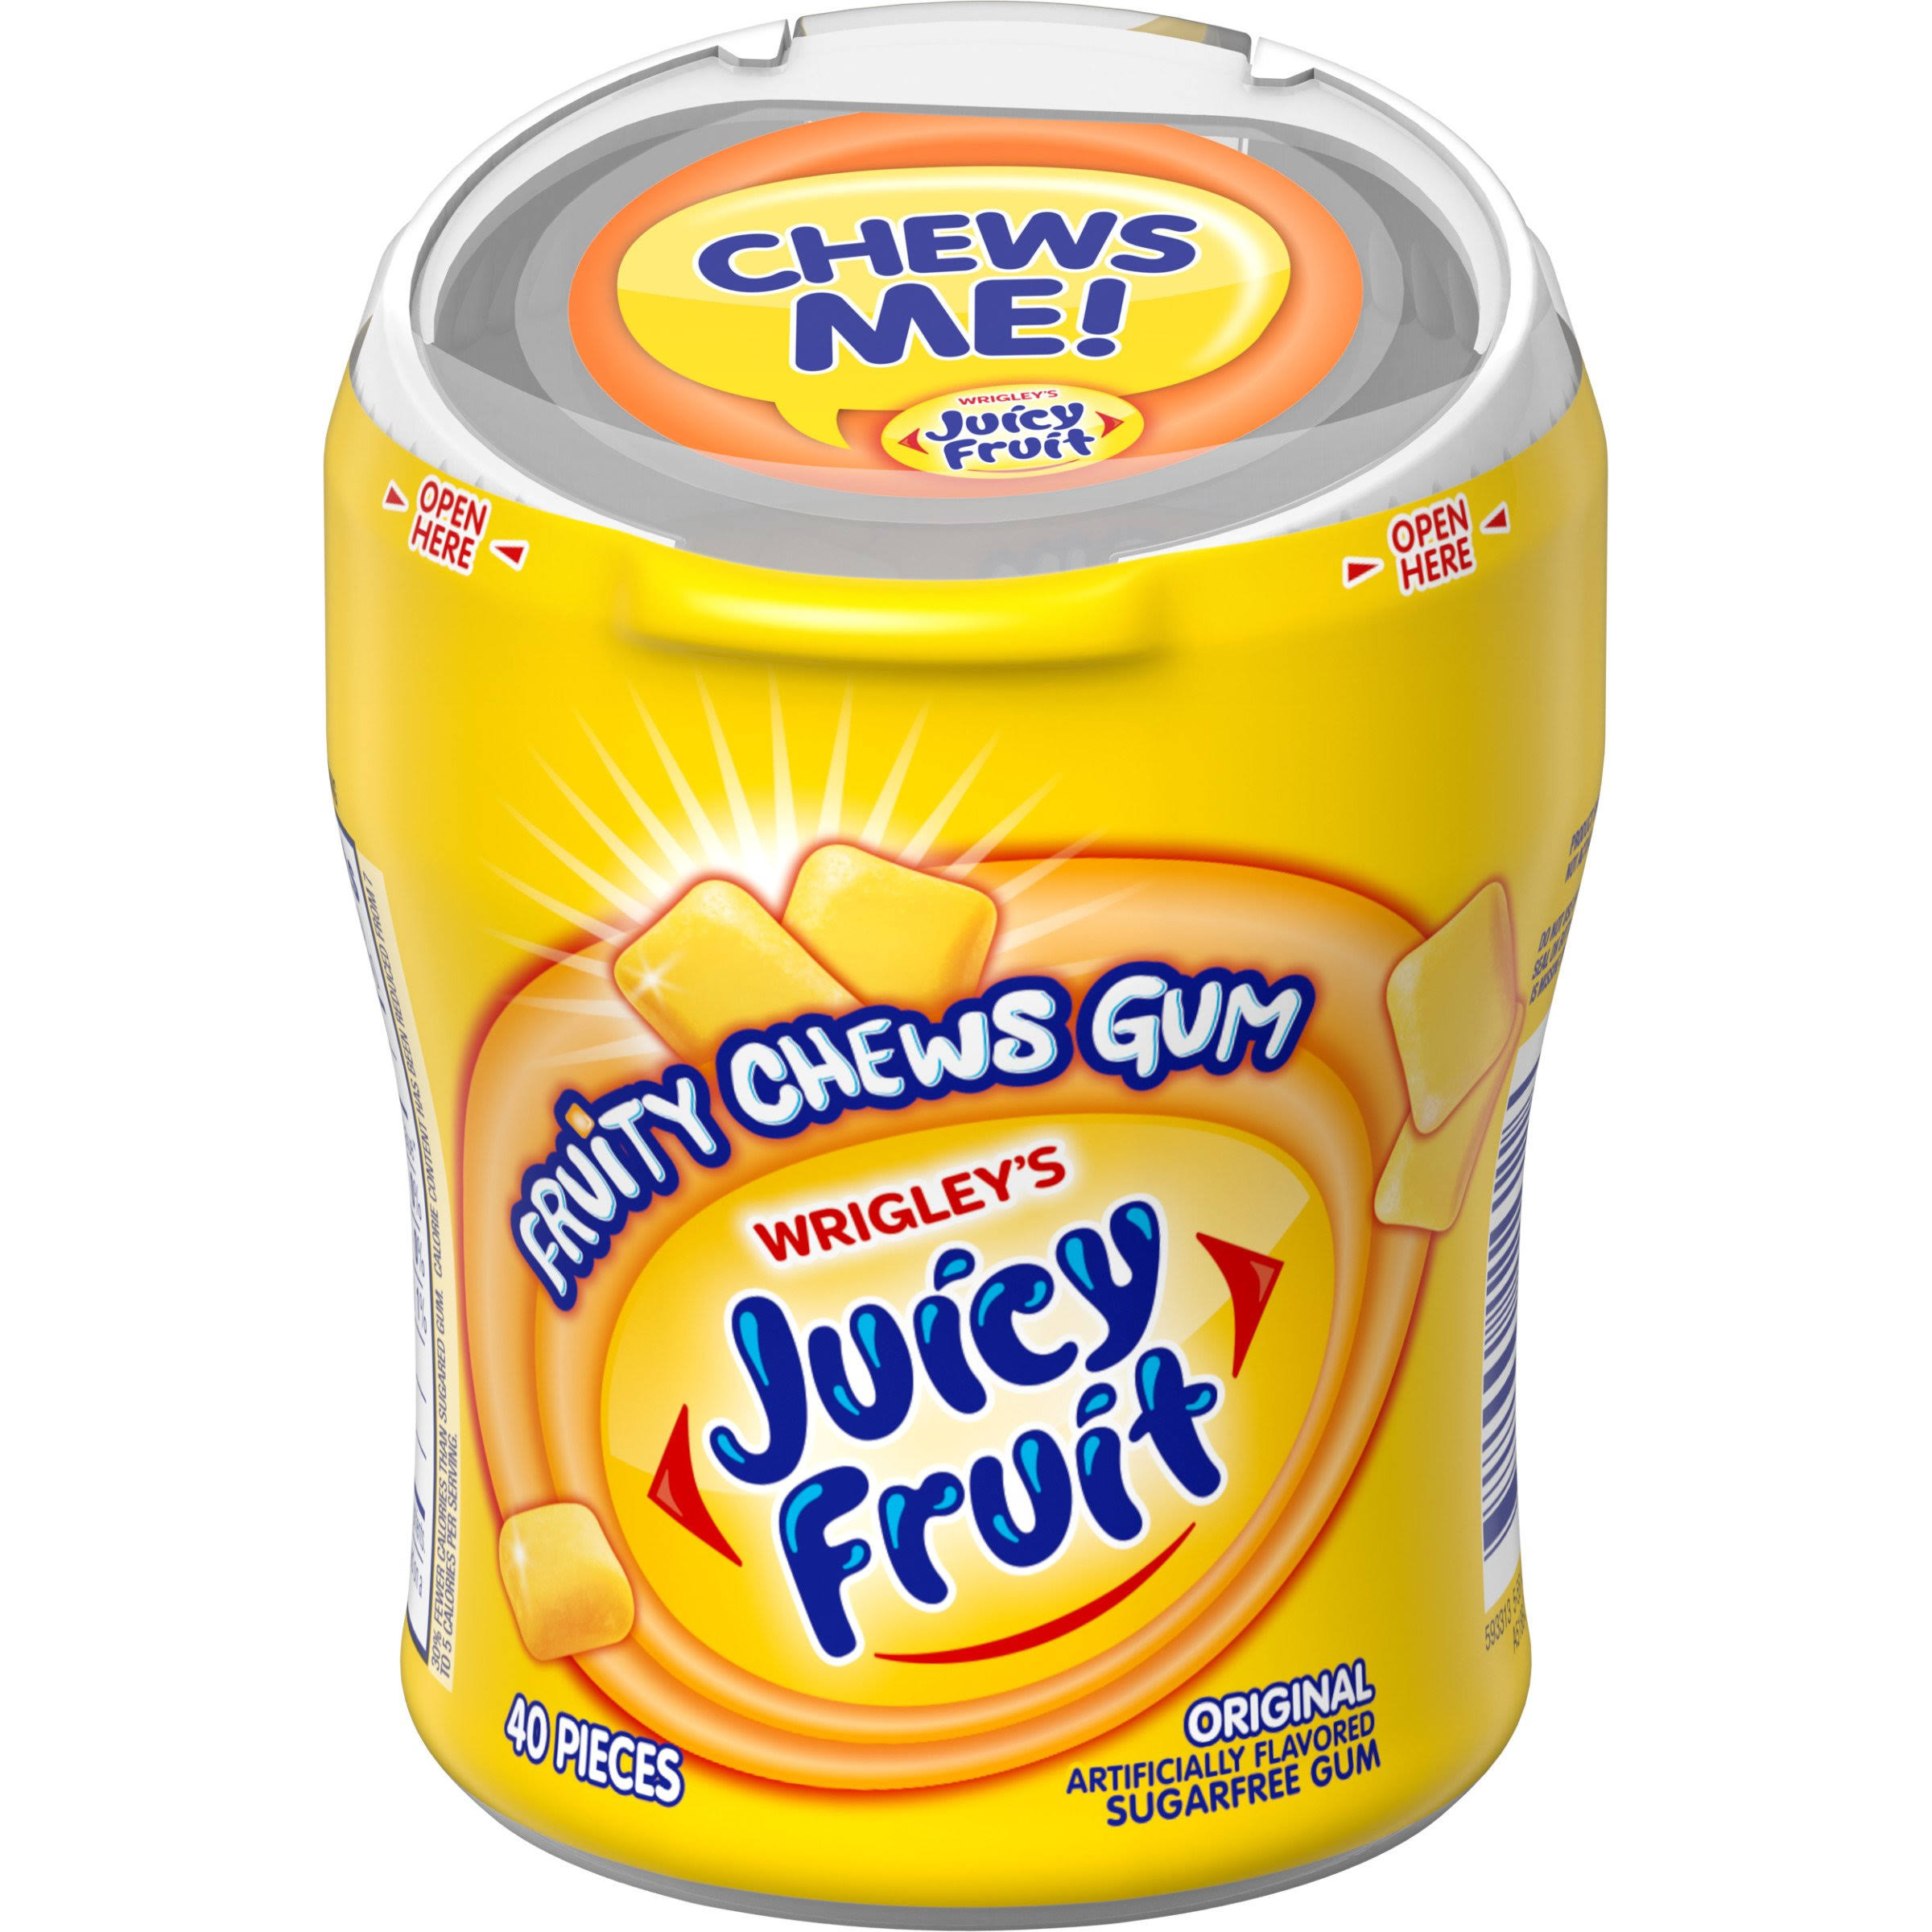 Wrigley's Juicy Fruit Fruity Chews - 40 Pieces